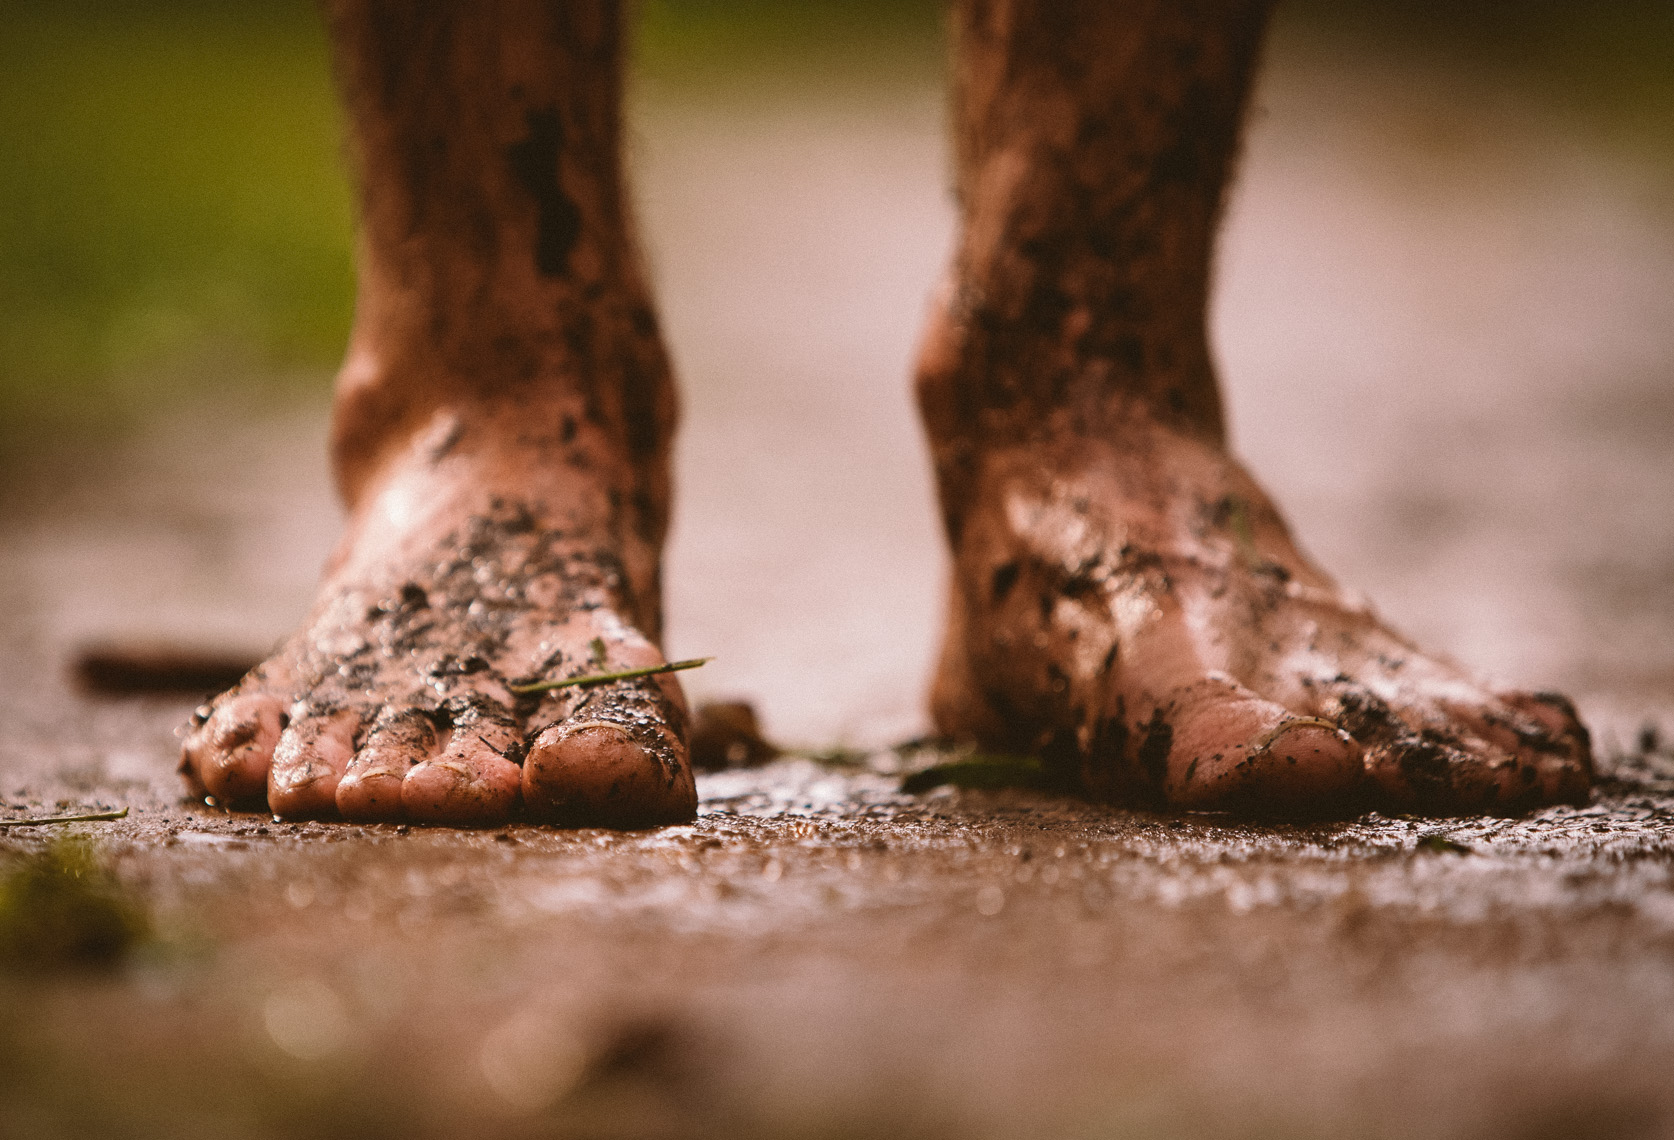 Adventure and outdoor lifestyle photogaph by Forest Woodward barefoot runner muddy feet